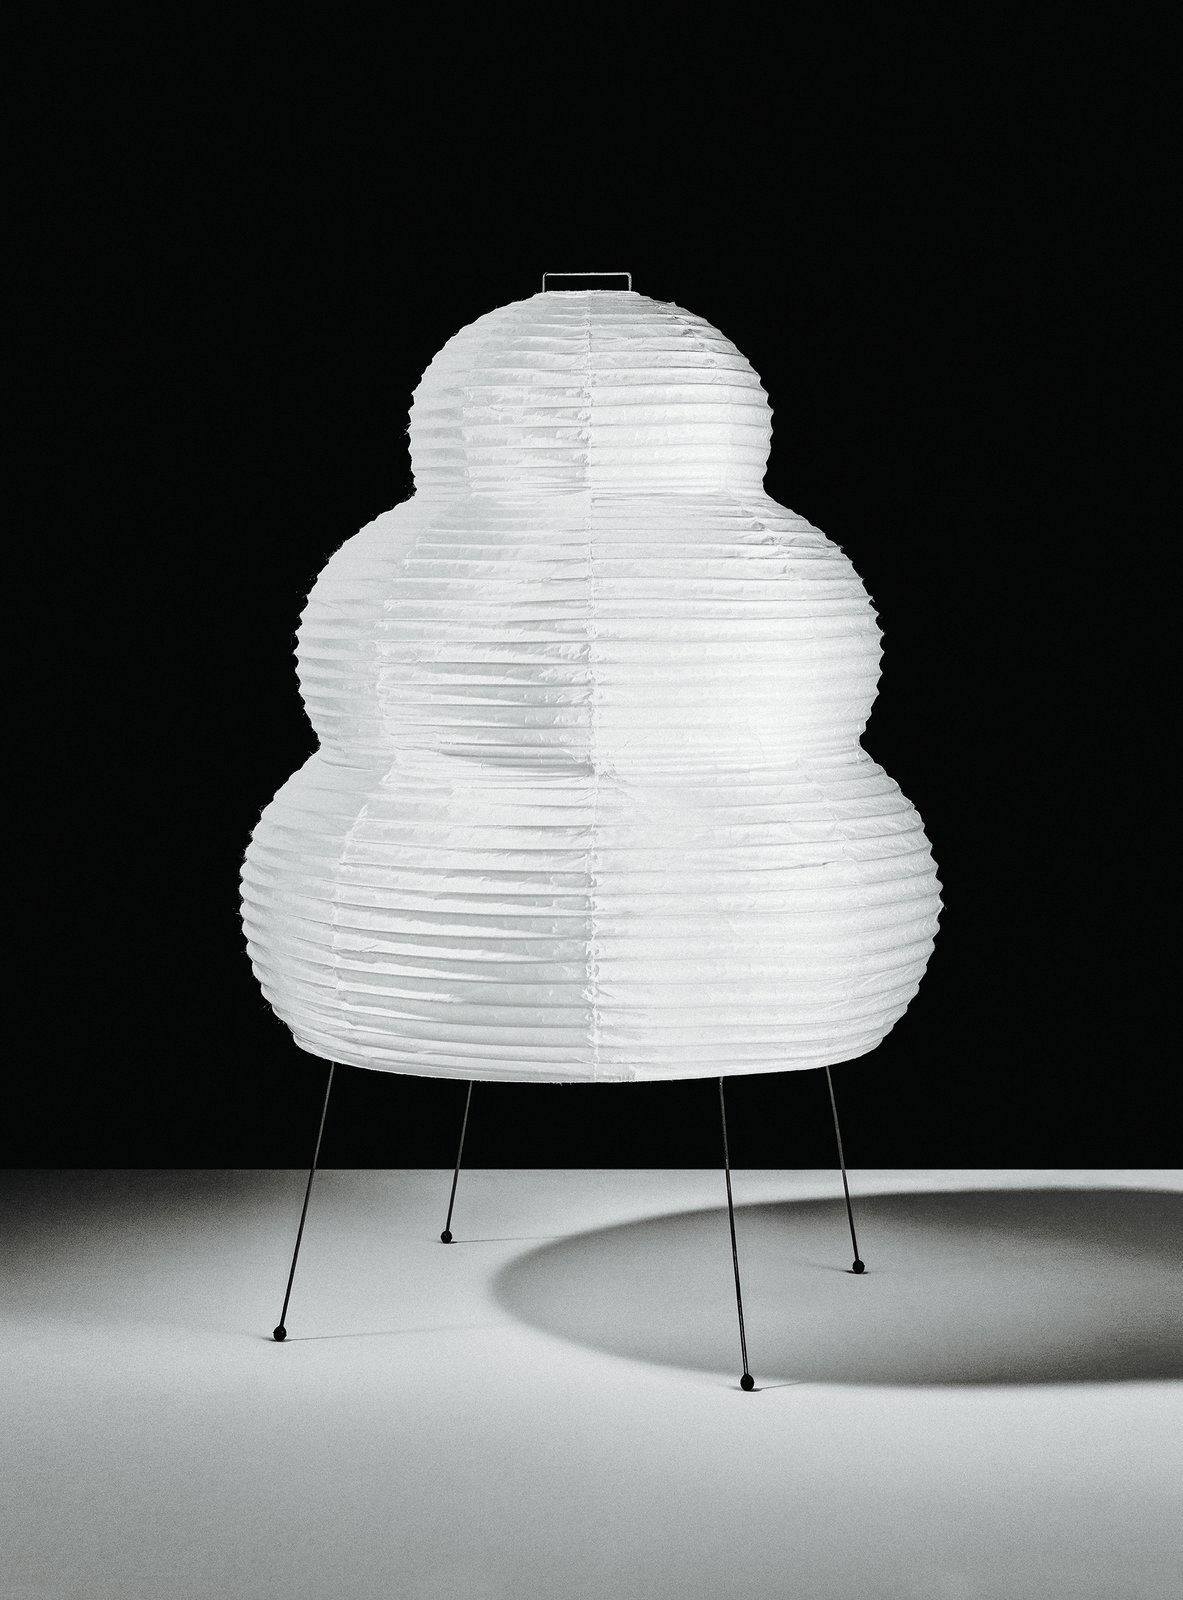 Living Room and Floor Lighting Isamu Noguchi designed more than 200 Akari  lanterns, all of which are still handmade at the  same family-owned  factory in Gifu, Japan.  Photo 2 of 2 in Spotlight on Isamu Noguchi's Innovative and Iconic Paper Lanterns